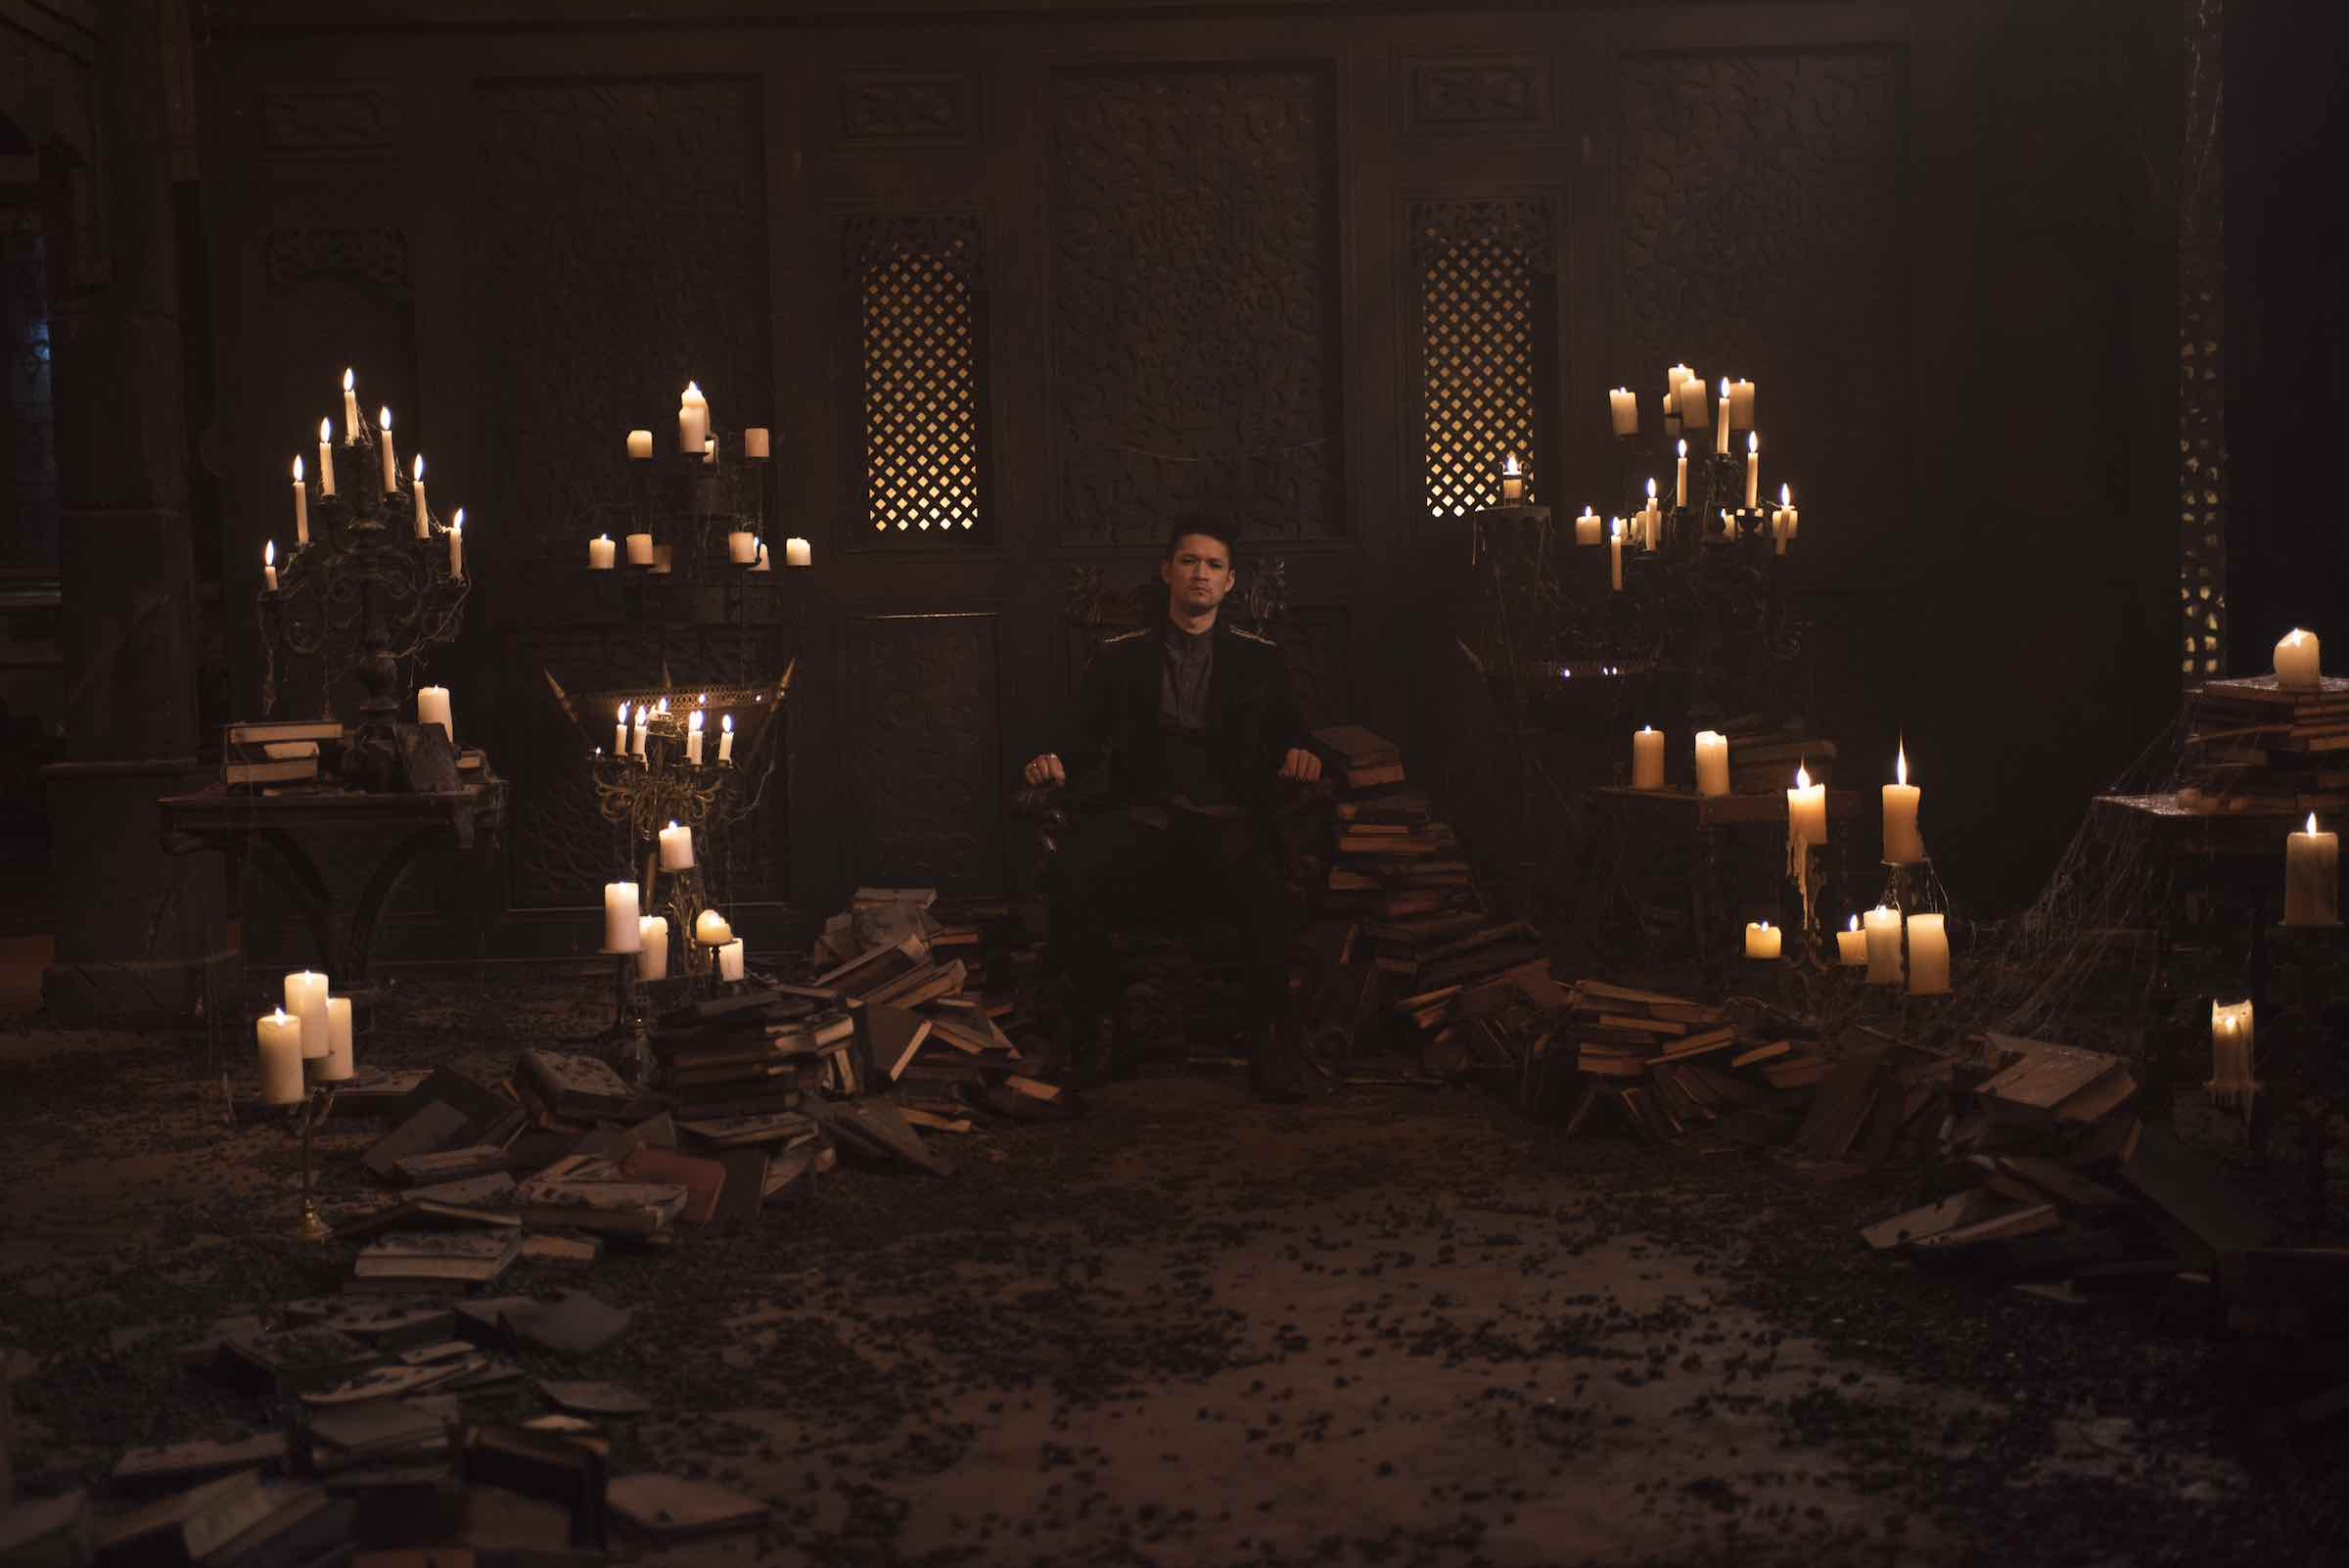 """To bolster our spirits, we thought it prudent to share the information we have about the 'Shadowhunters' finale, """"Alliance"""", airing this coming Monday."""